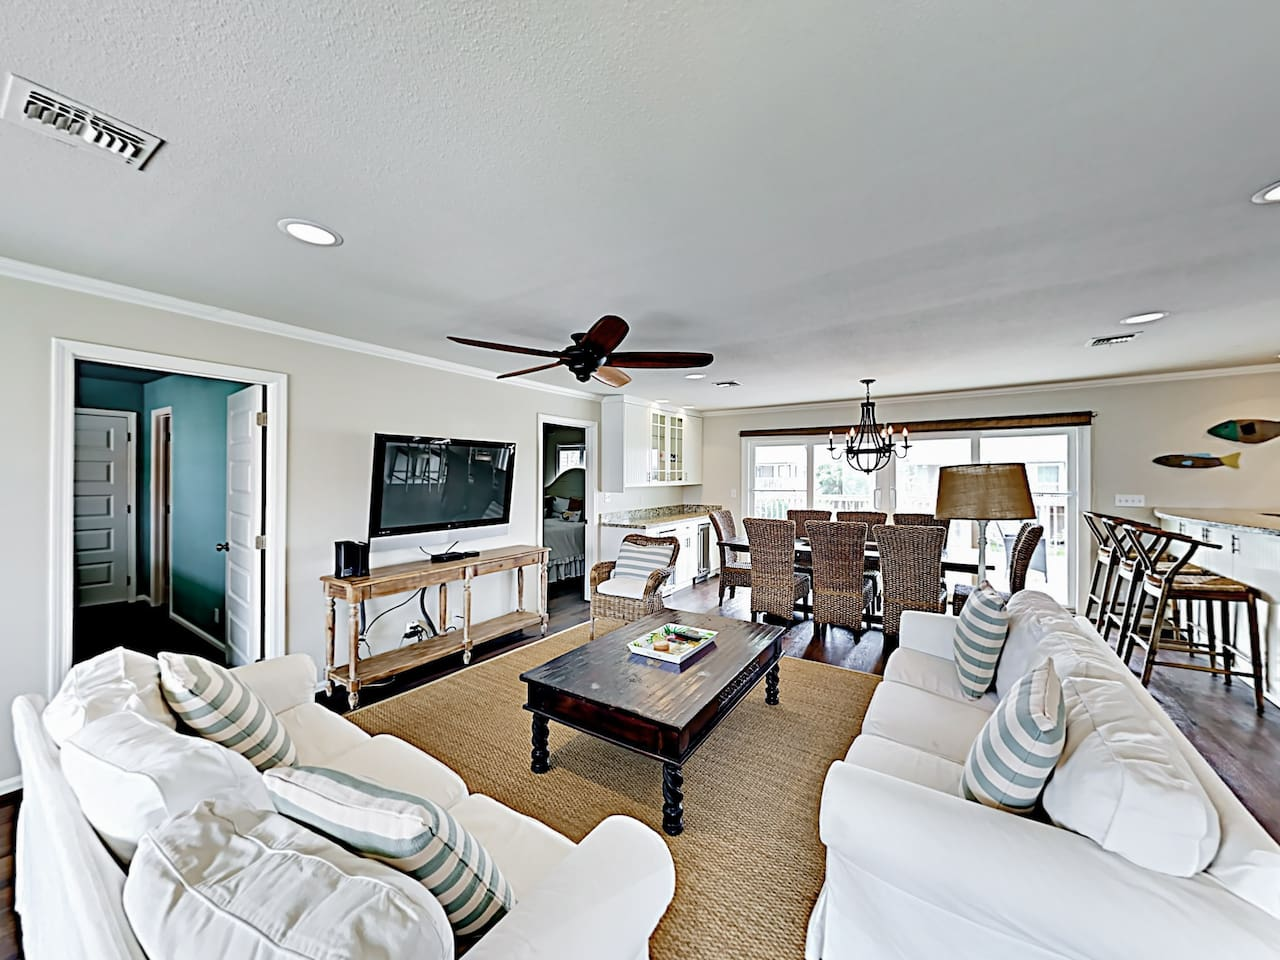 Welcome to Rockport! This home is professionally managed by TurnKey Vacation Rentals.